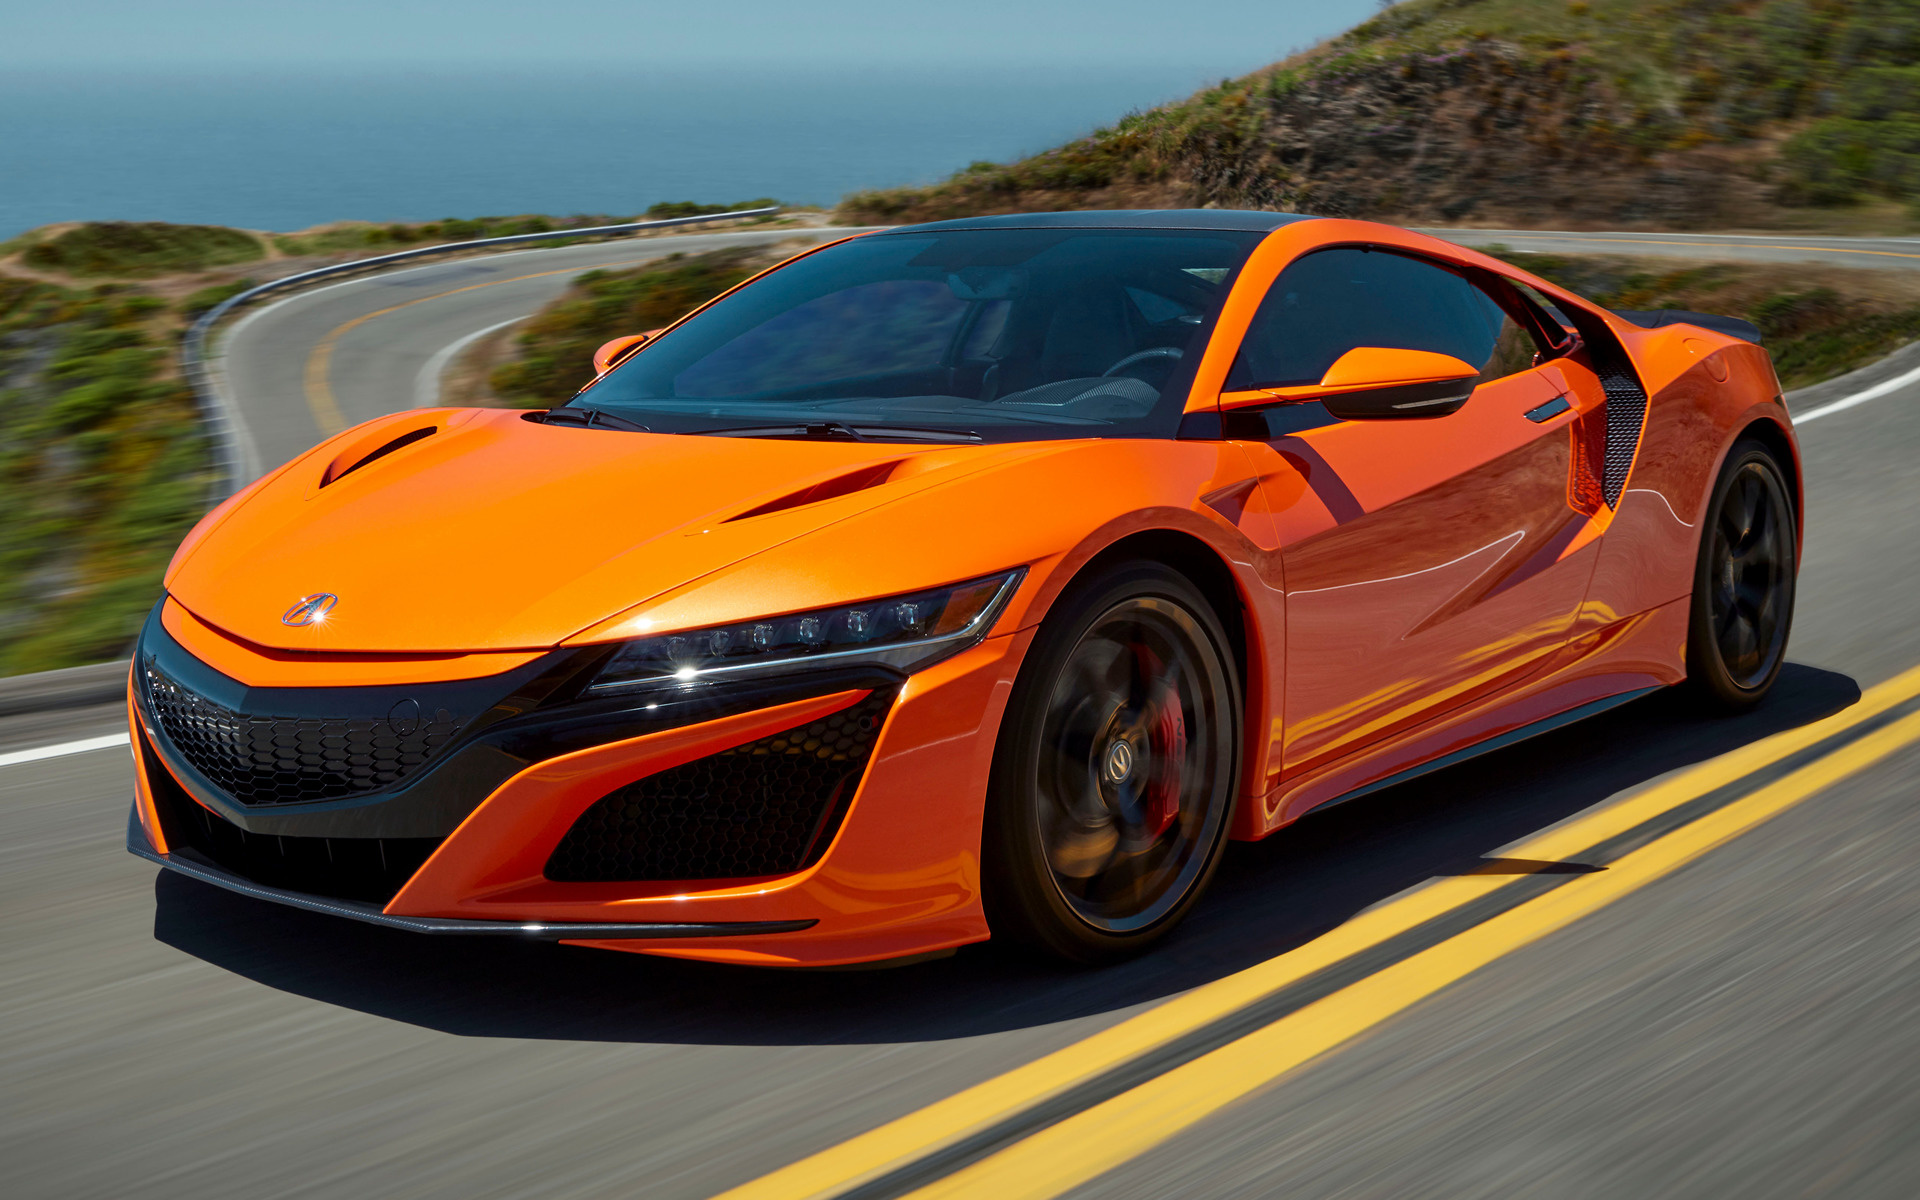 2019 Acura NSX - Wallpapers and HD Images | Car Pixel